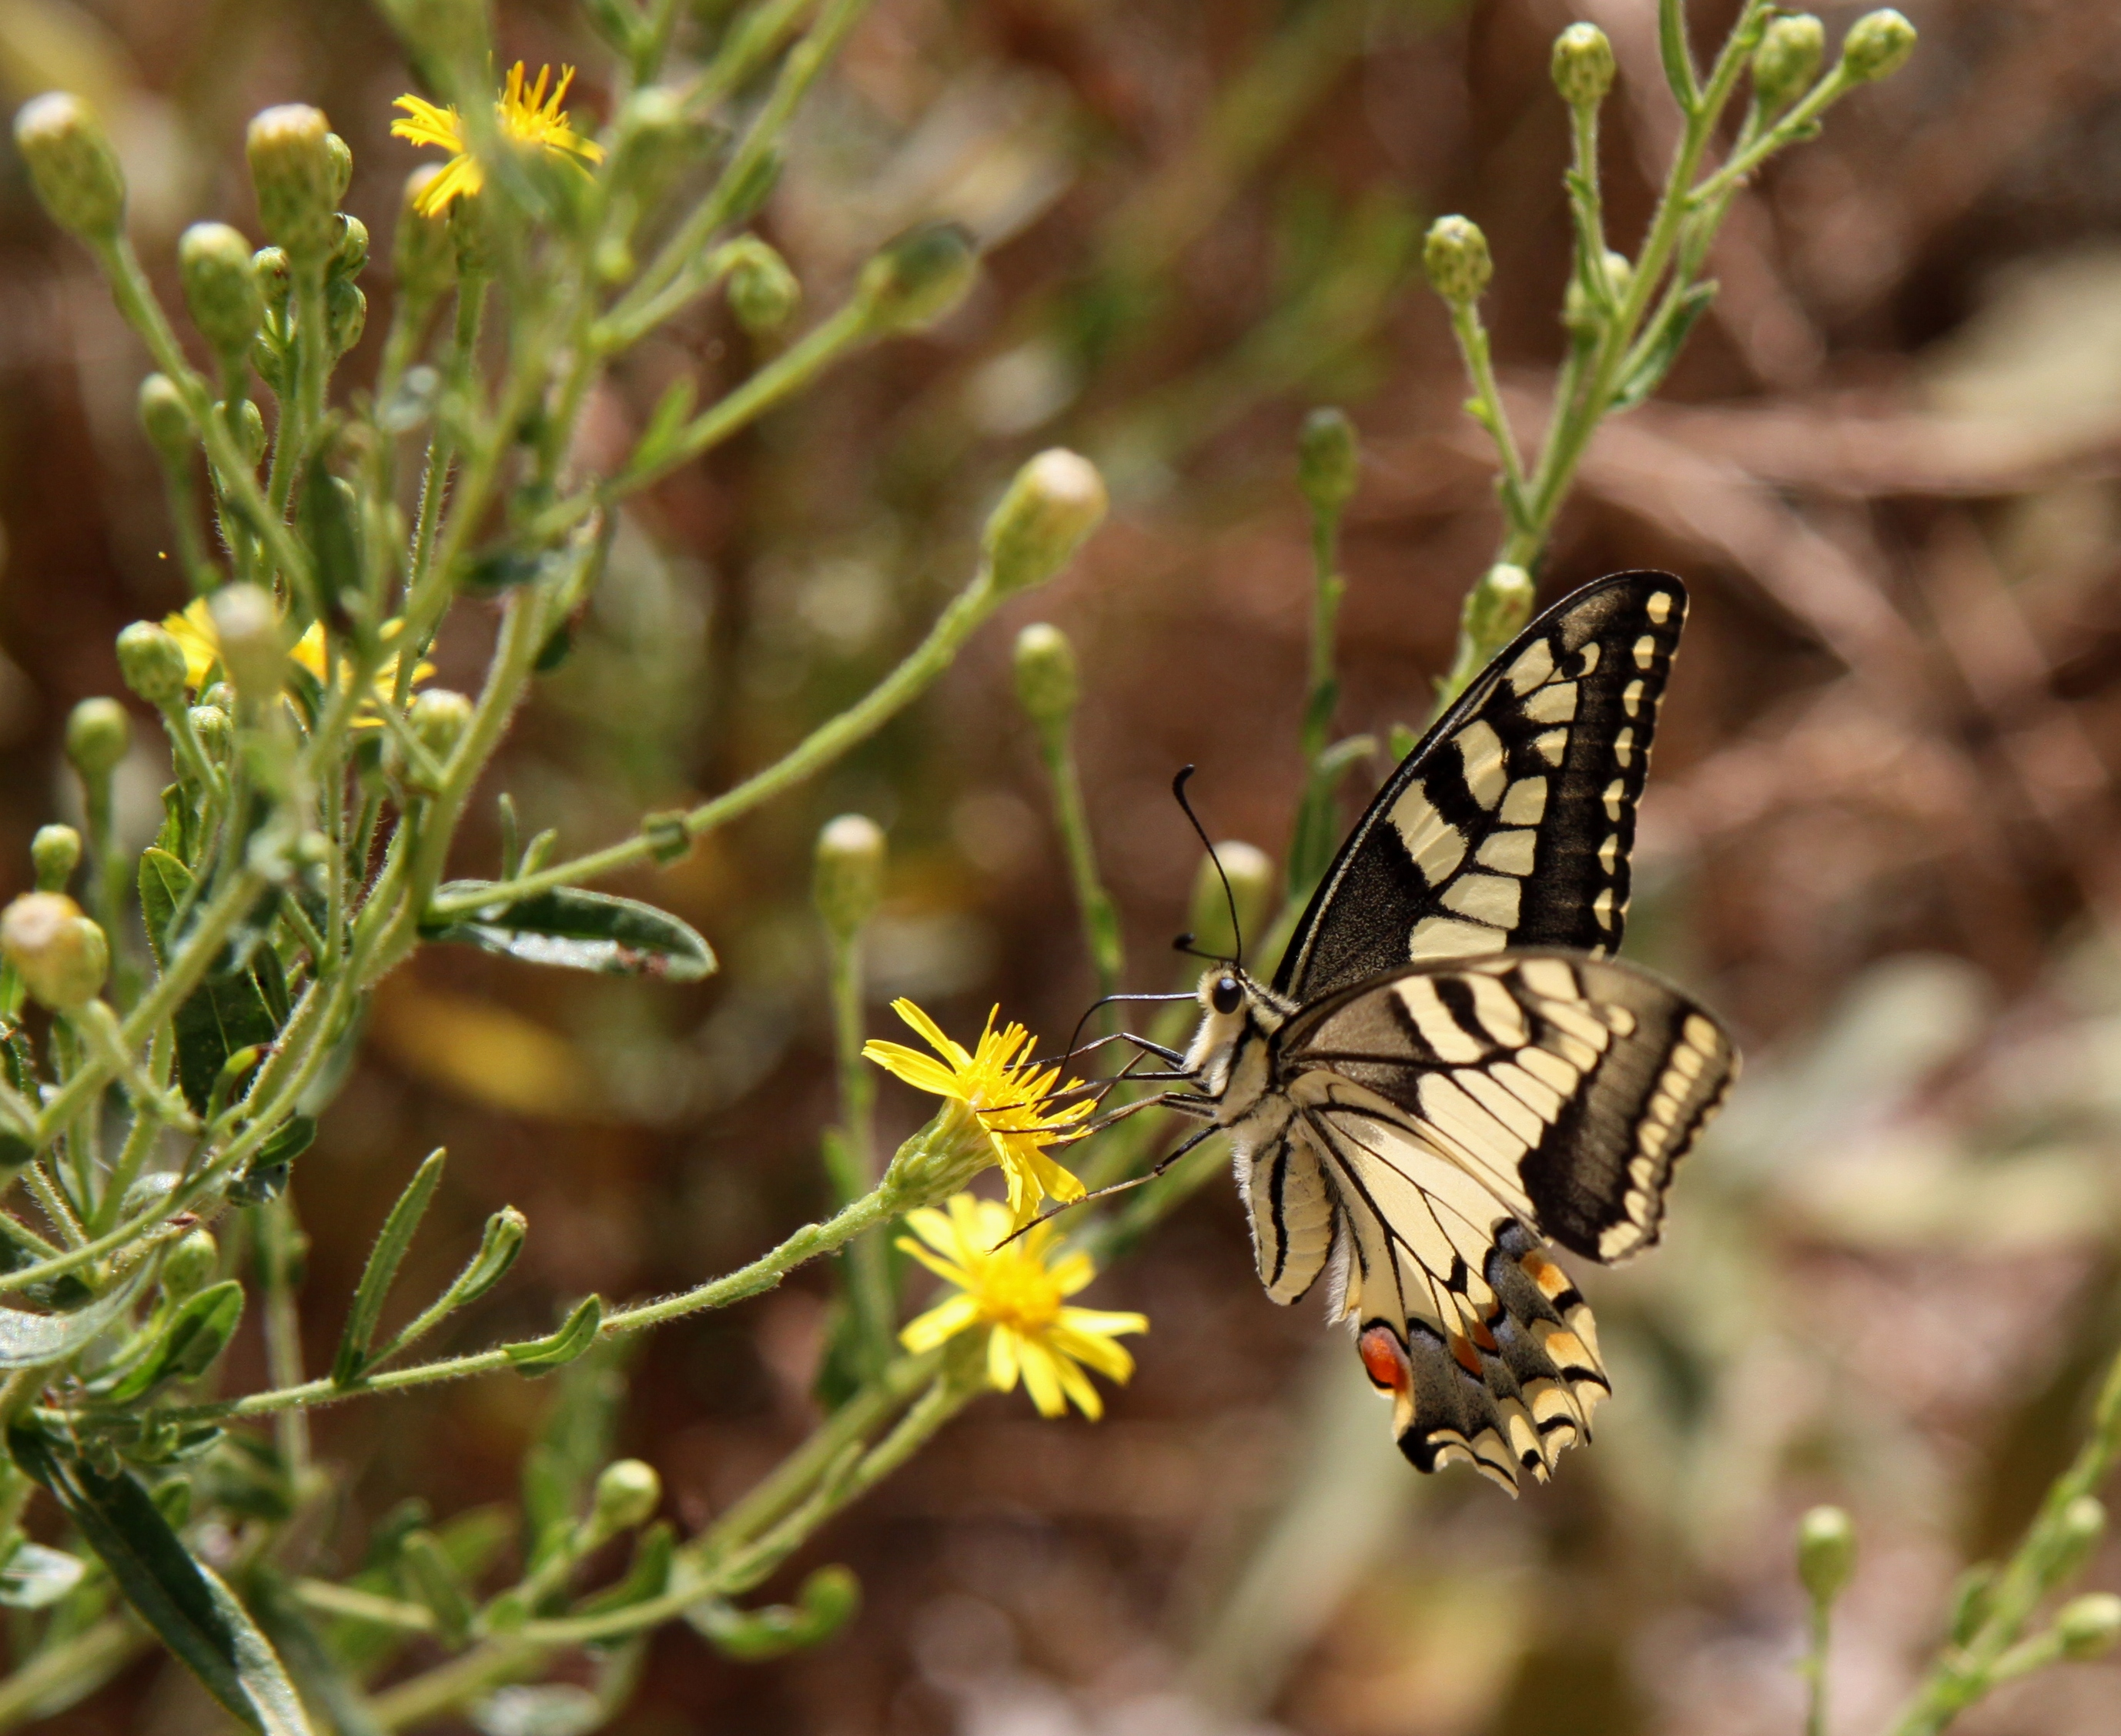 Sierra_de_las_nieves_natural_park_yunquera_hiking_senderismo_rutas_andrew_forbes_butterfly_mariposa